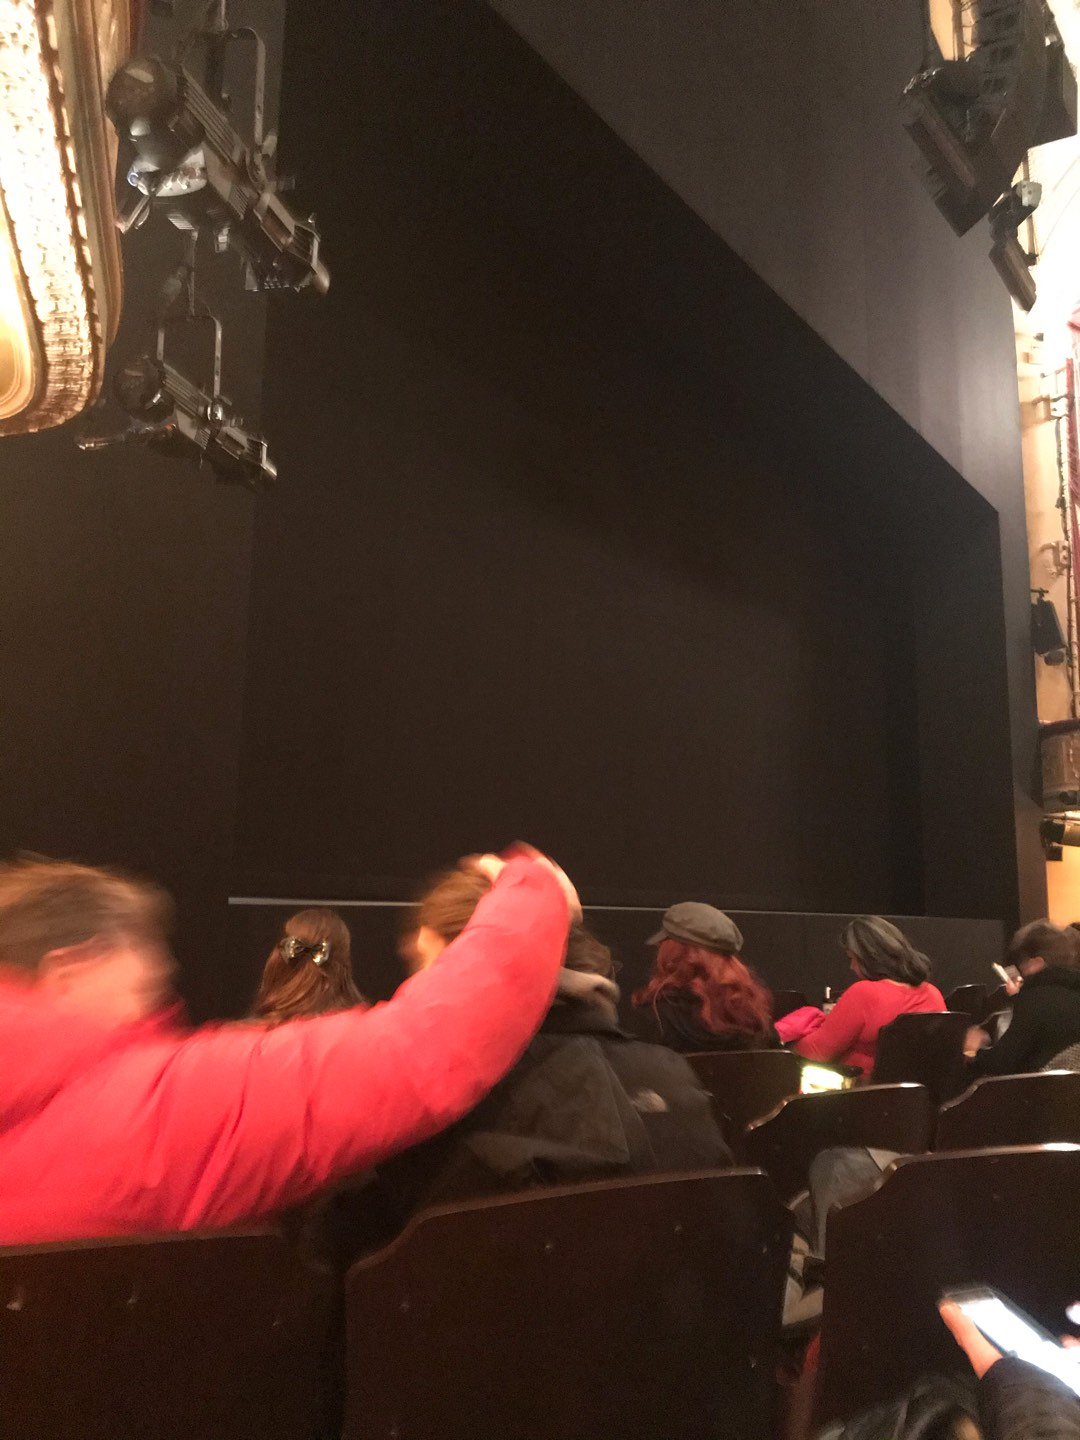 Bernard B. Jacobs Theatre Section Orchestra L Row F Seat 13